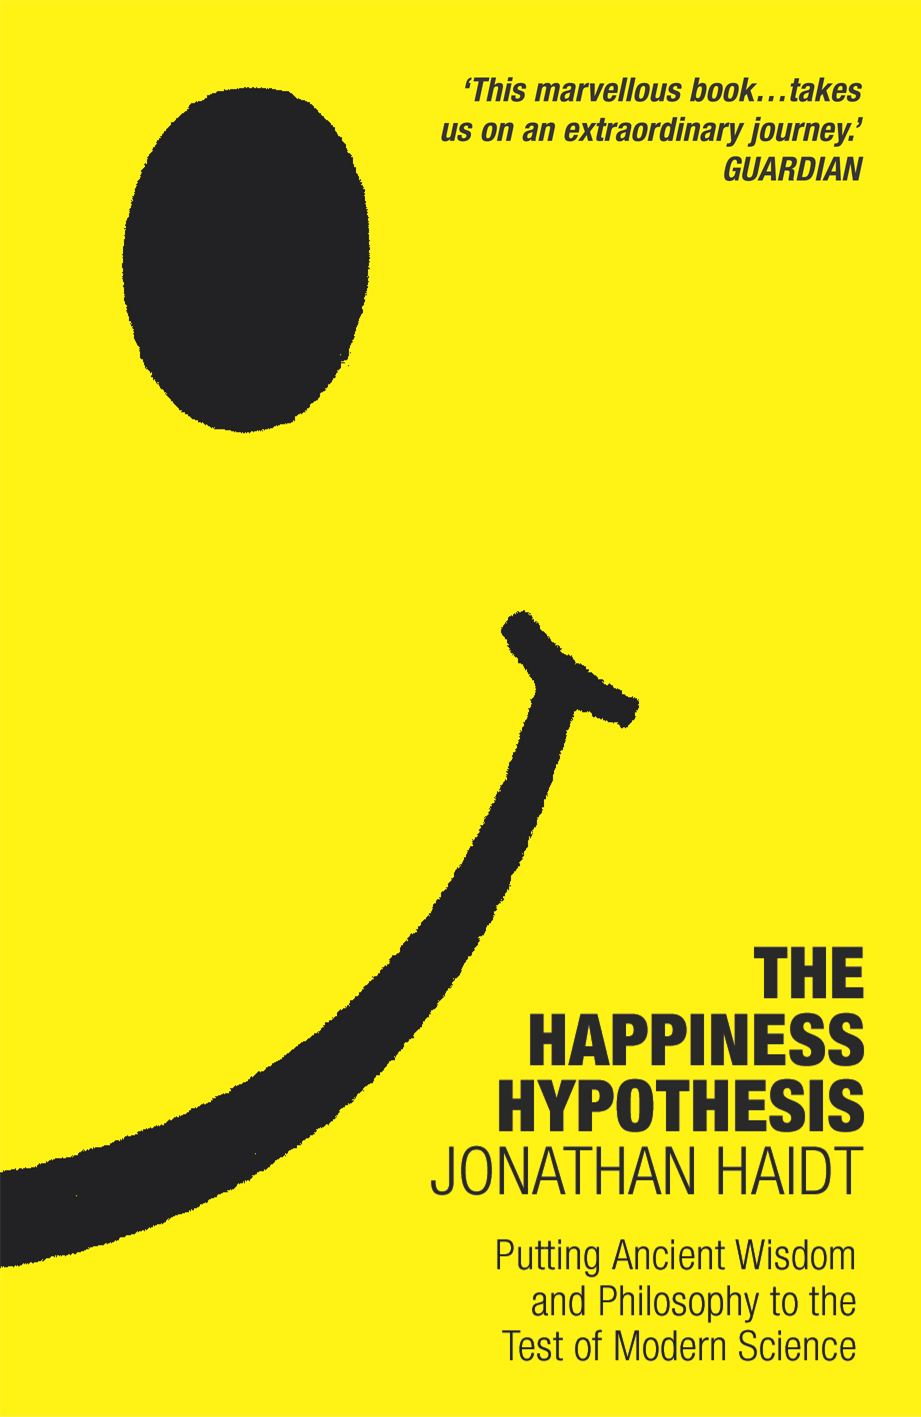 The Happiness Hypothesis: Putting Ancient Wisdom to the Test of Modern Science by Jonathan Haidt, ISBN: 9780099478898